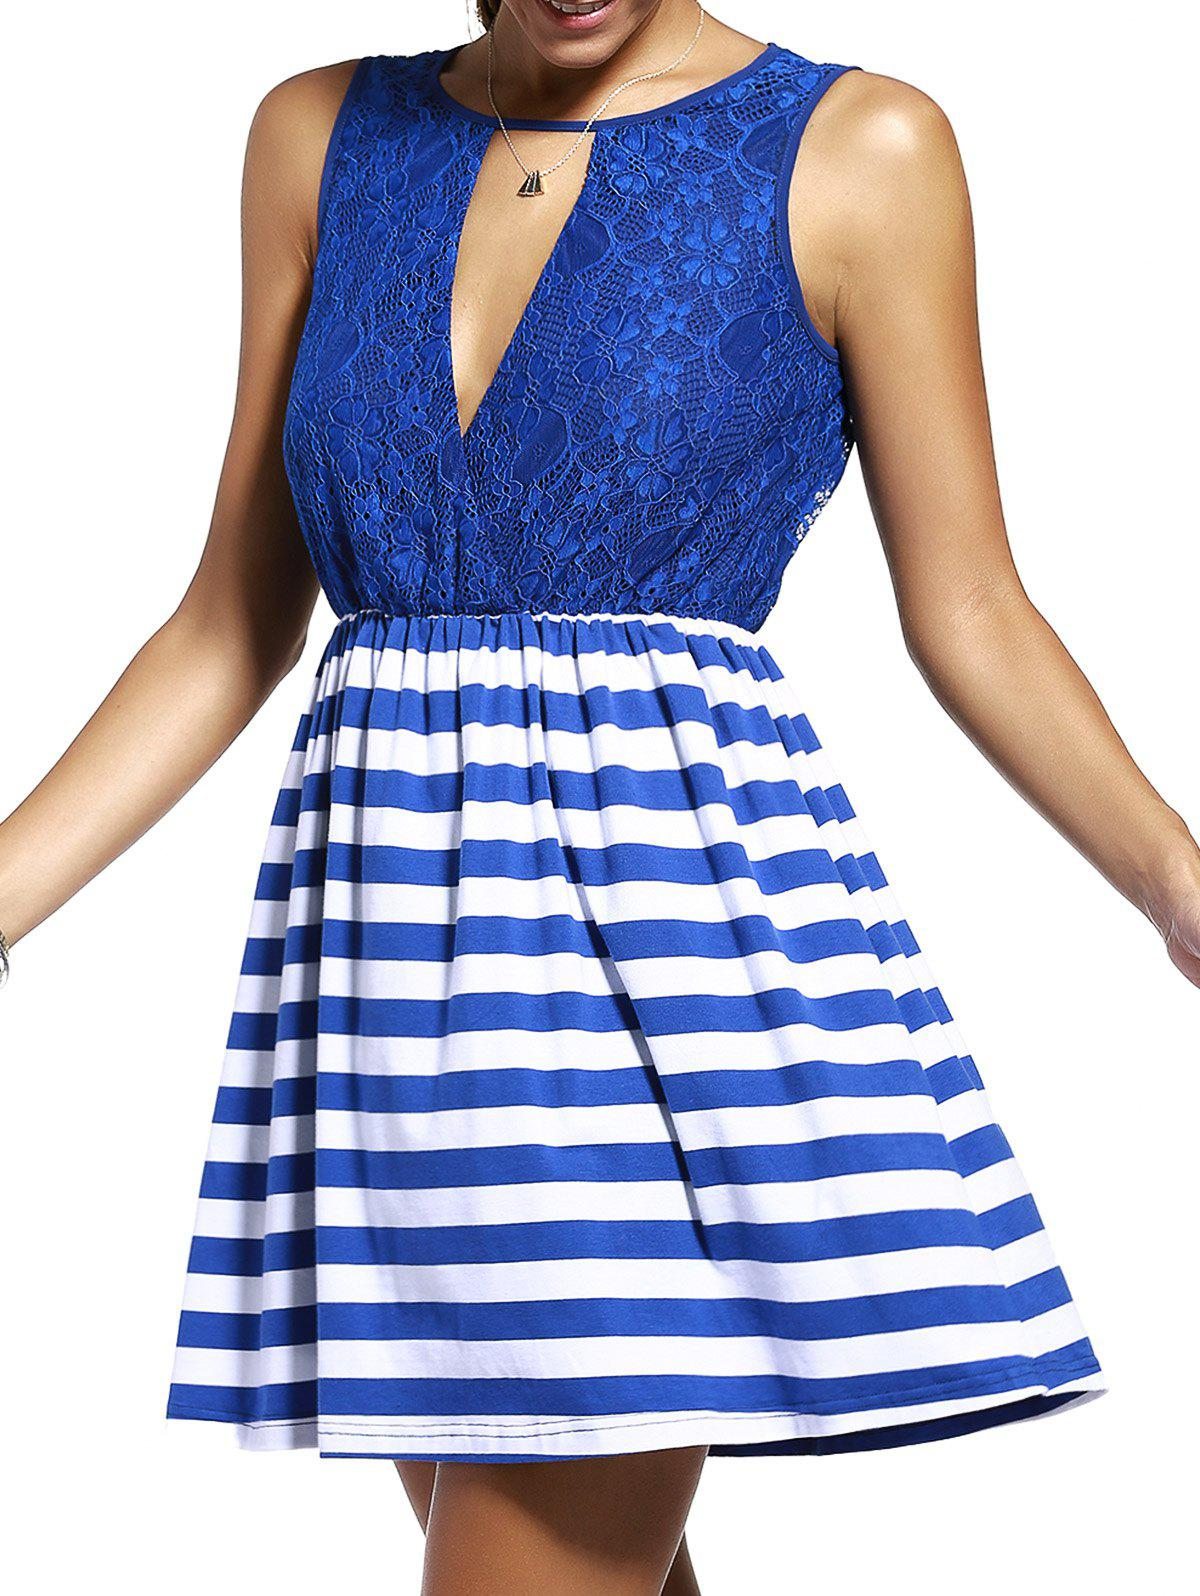 Chic Lace Spliced Cut Out Striped Sleeveless Dress For Women - PURPLISH BLUE L